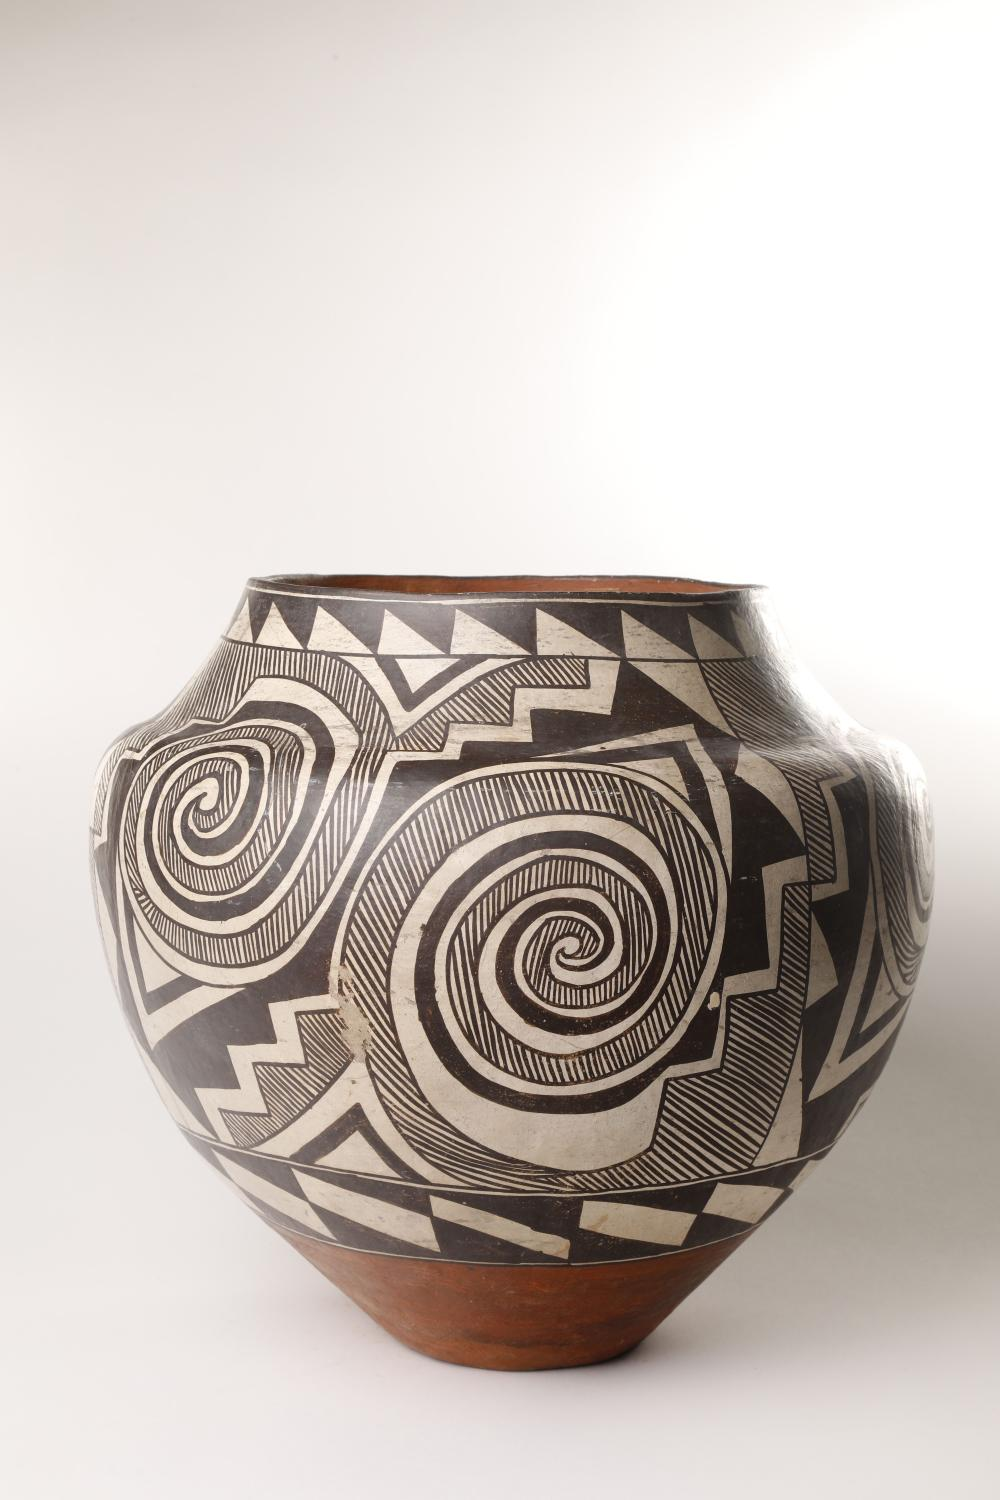 Acoma, Large Tularosa Revival Jar, ca. 1920